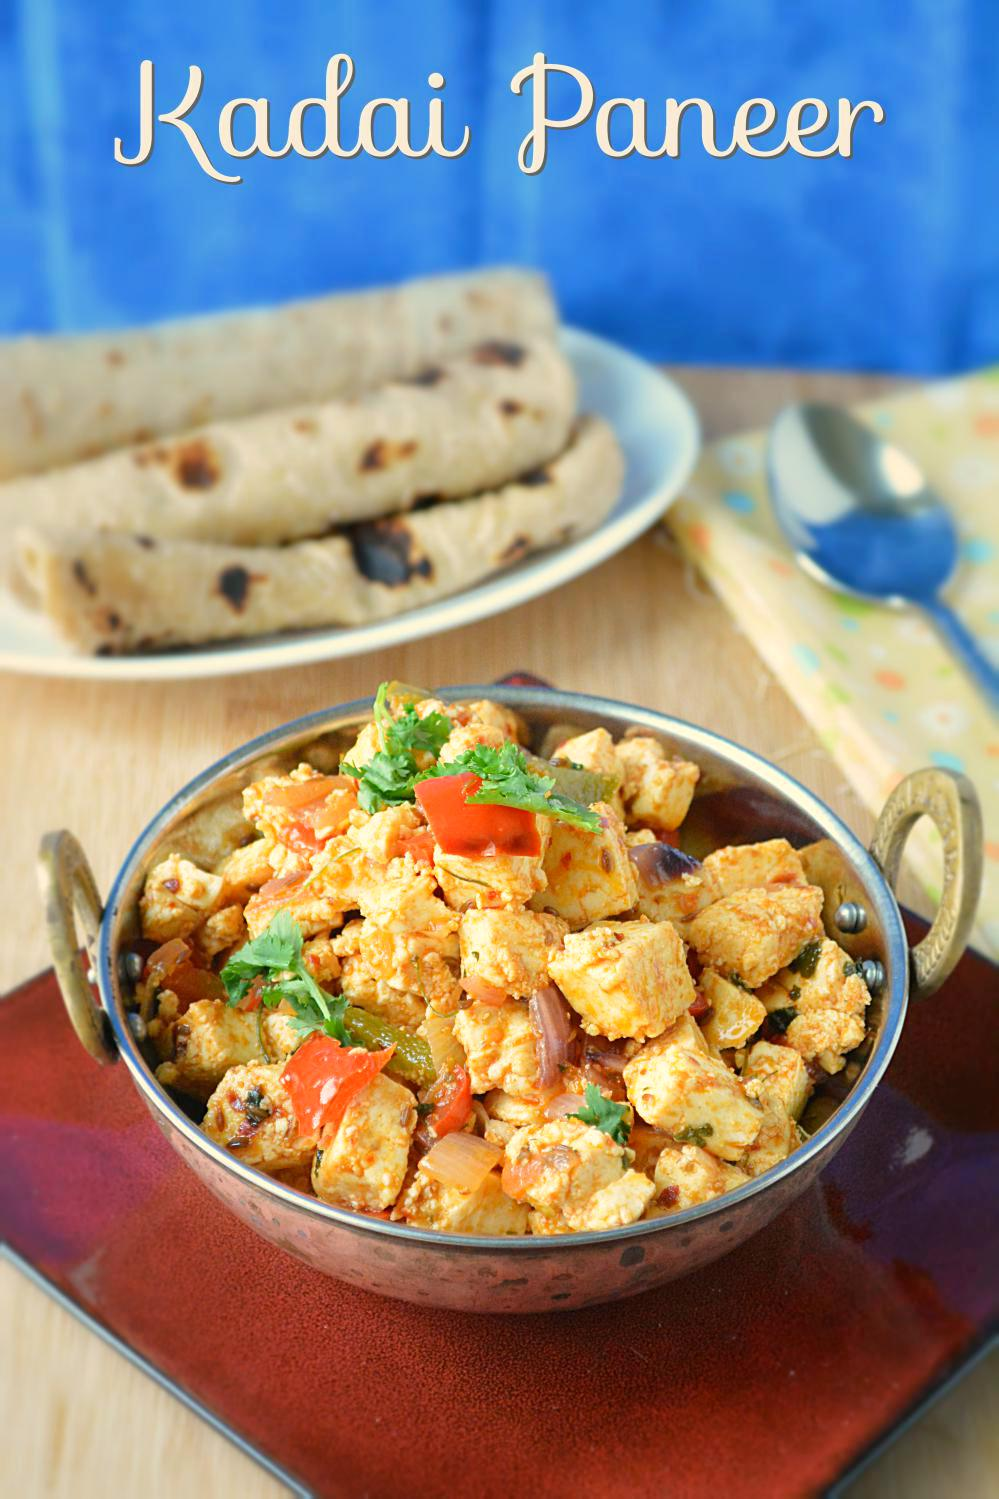 Kadai paneer recipe ruchiskitchen kadai paneer recipe forumfinder Image collections